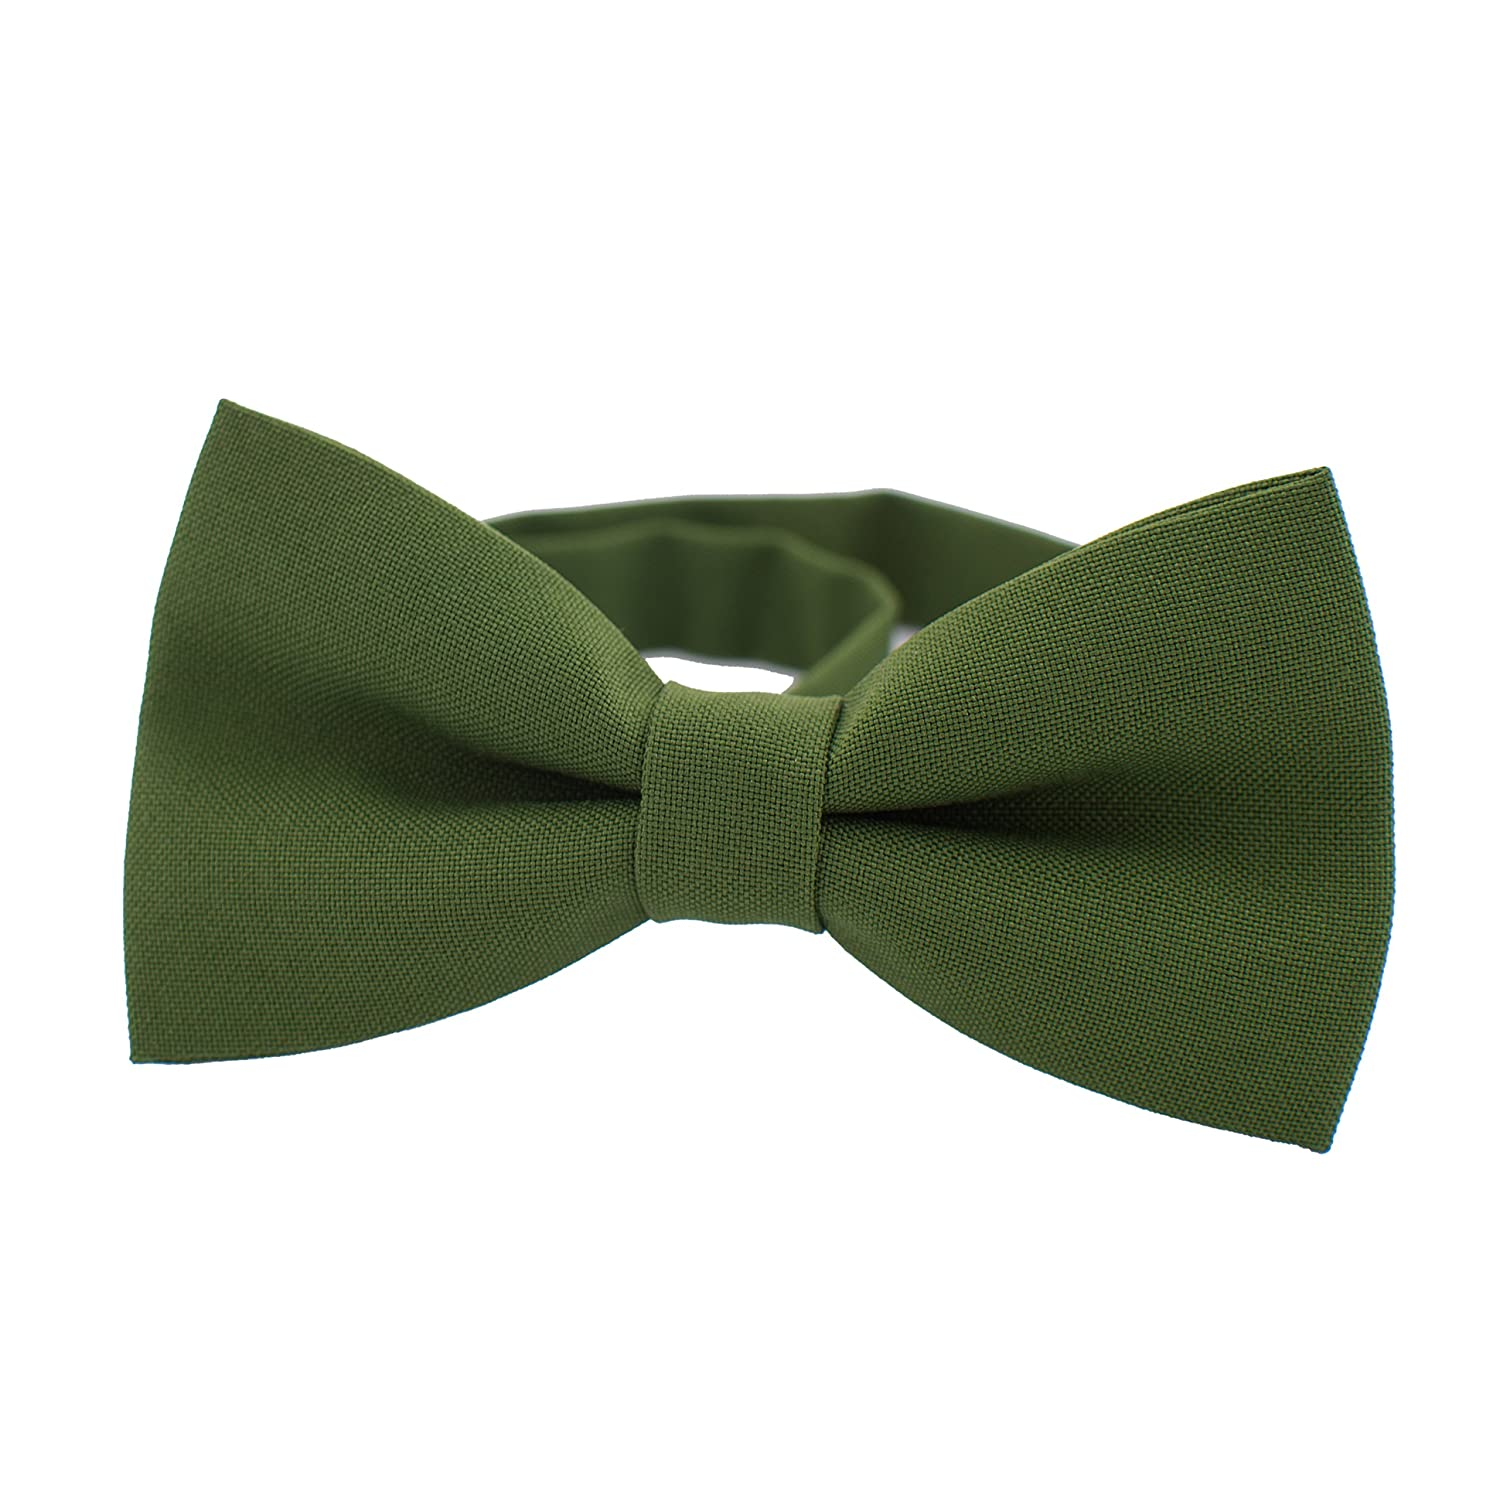 by Bow Tie House Medium, Light Green Classic Pre-Tied Bow Tie Formal Solid Tuxedo